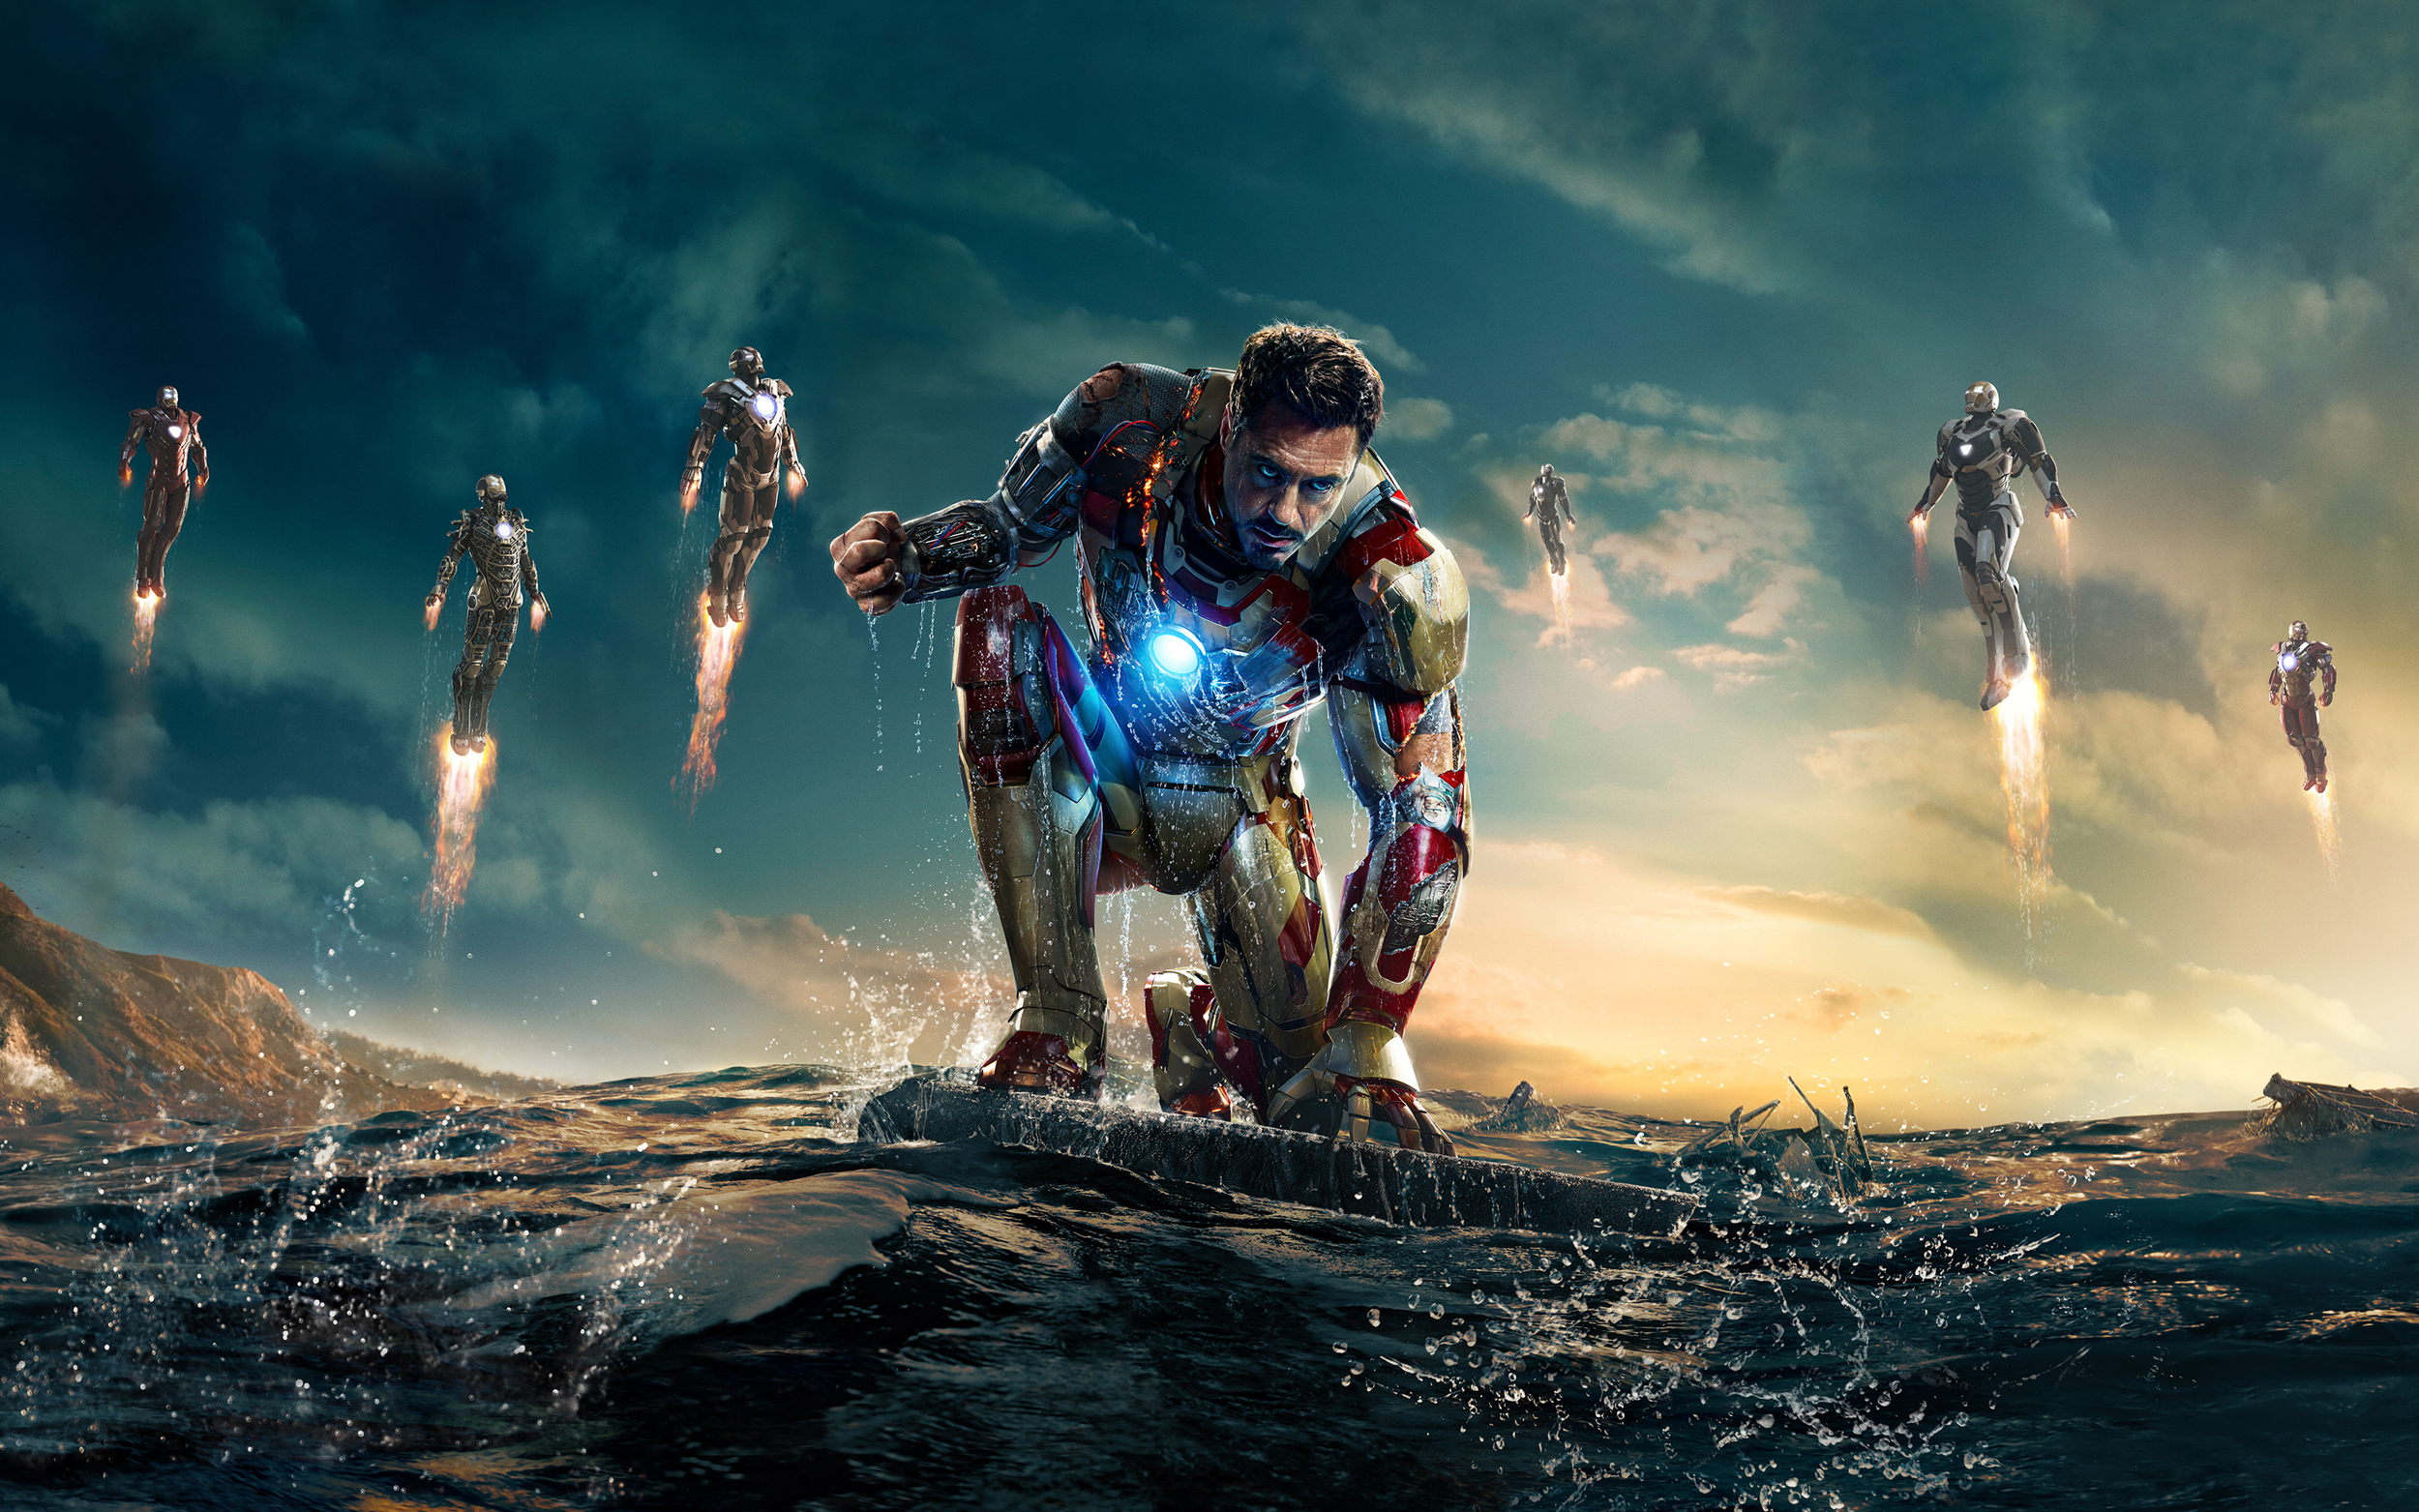 robert-downey-jr-says-there-are-no-plans-for-iron-man-4